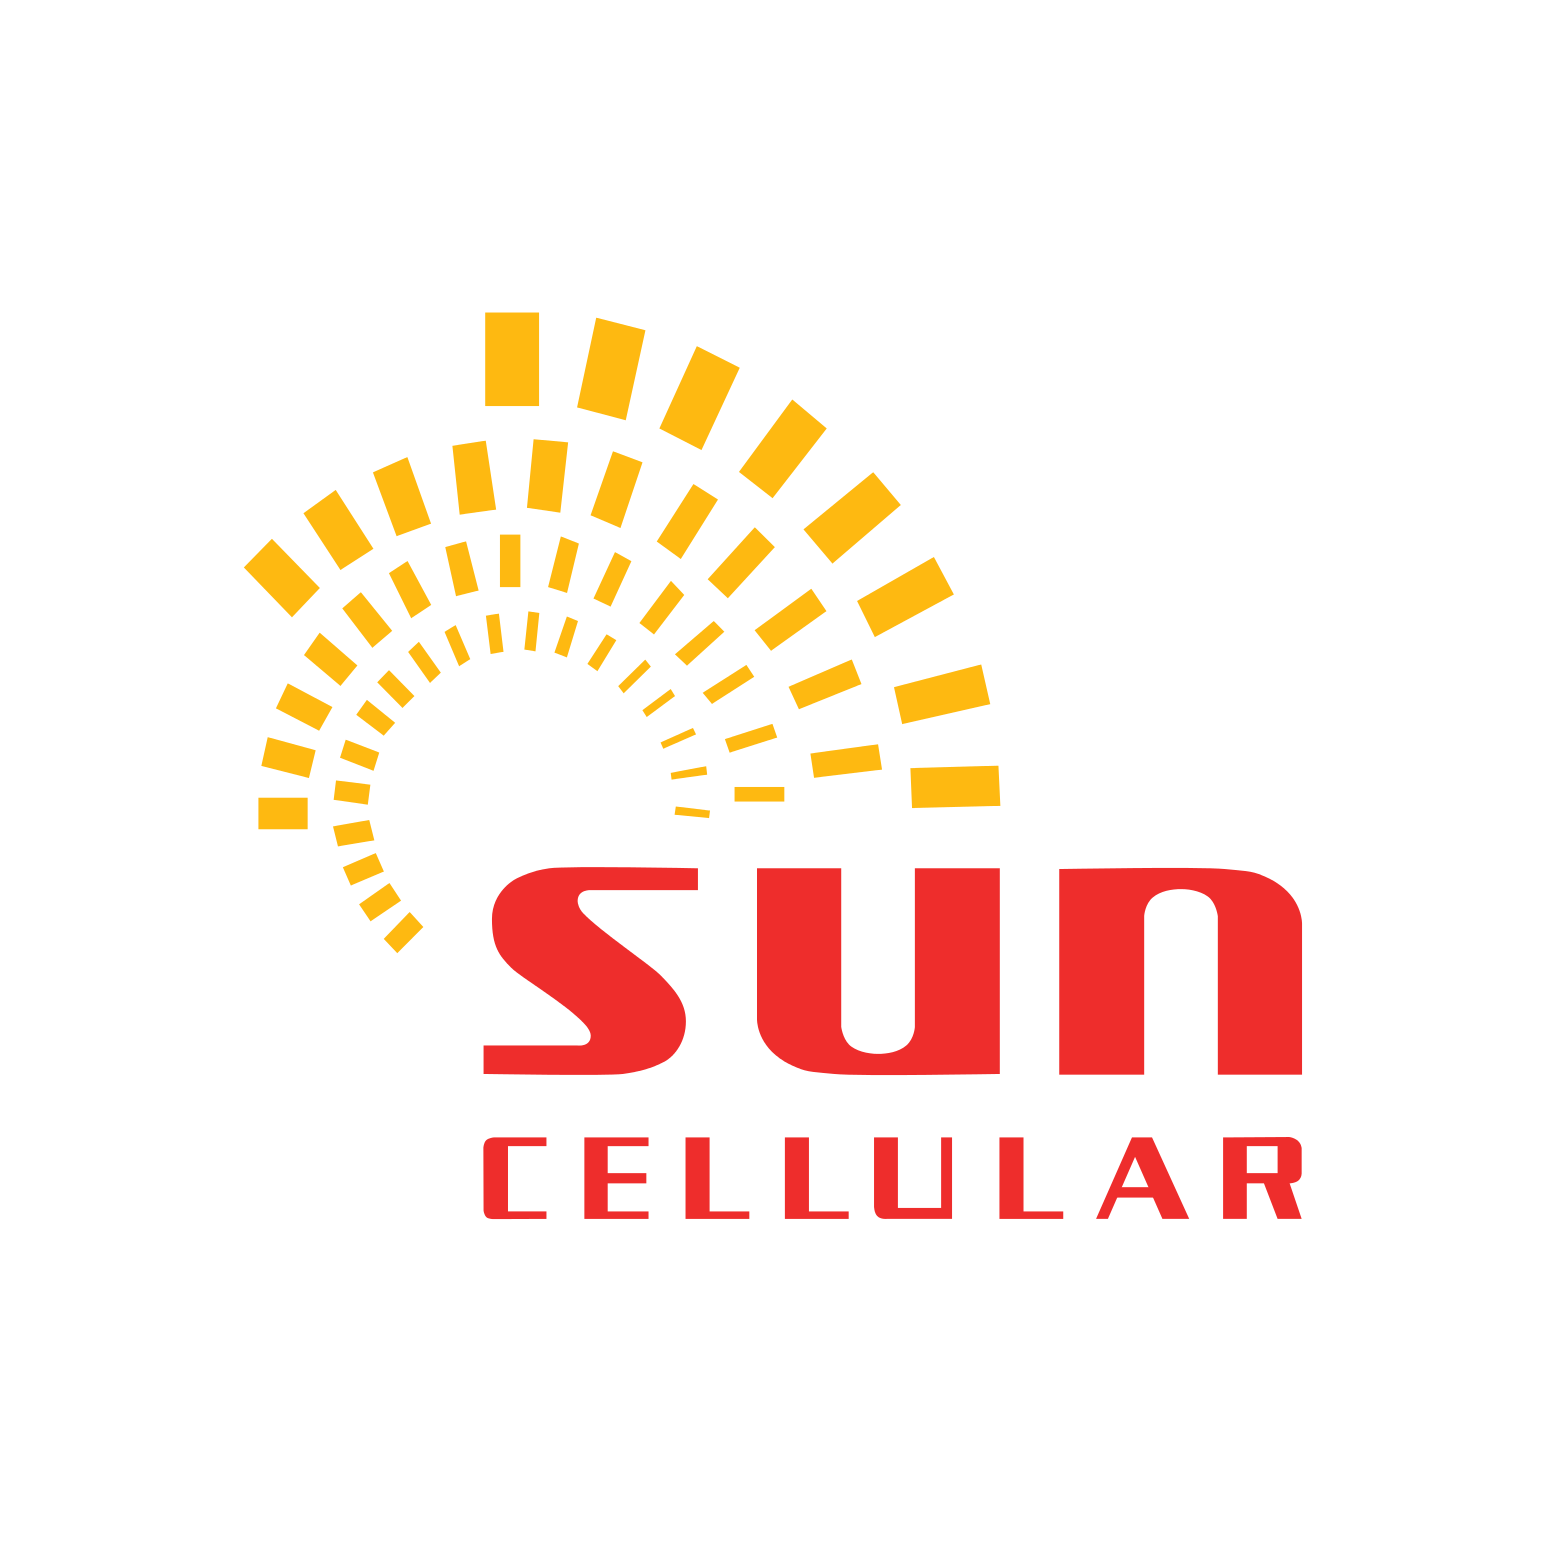 Unlock Sun Cellular - Digitel Philippines iPhone 11 (Pro/Max), XS, XR, X, 8, 7, 6S